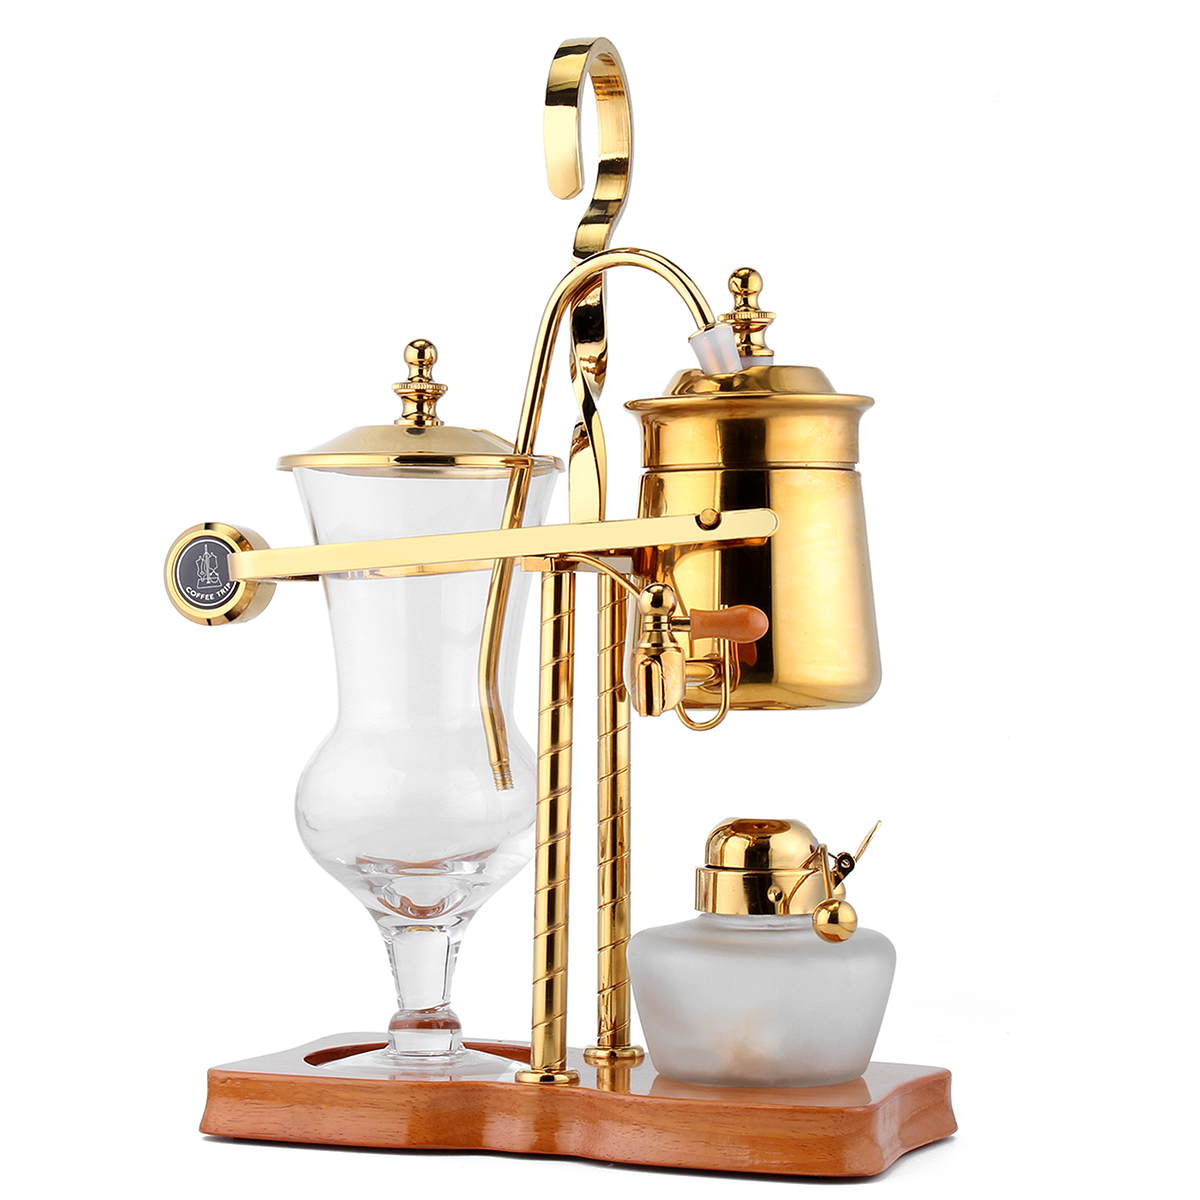 Belgian Belgium Luxury Royal Family Balance Syphon Siphon Coffee Tea Pot Maker Golden